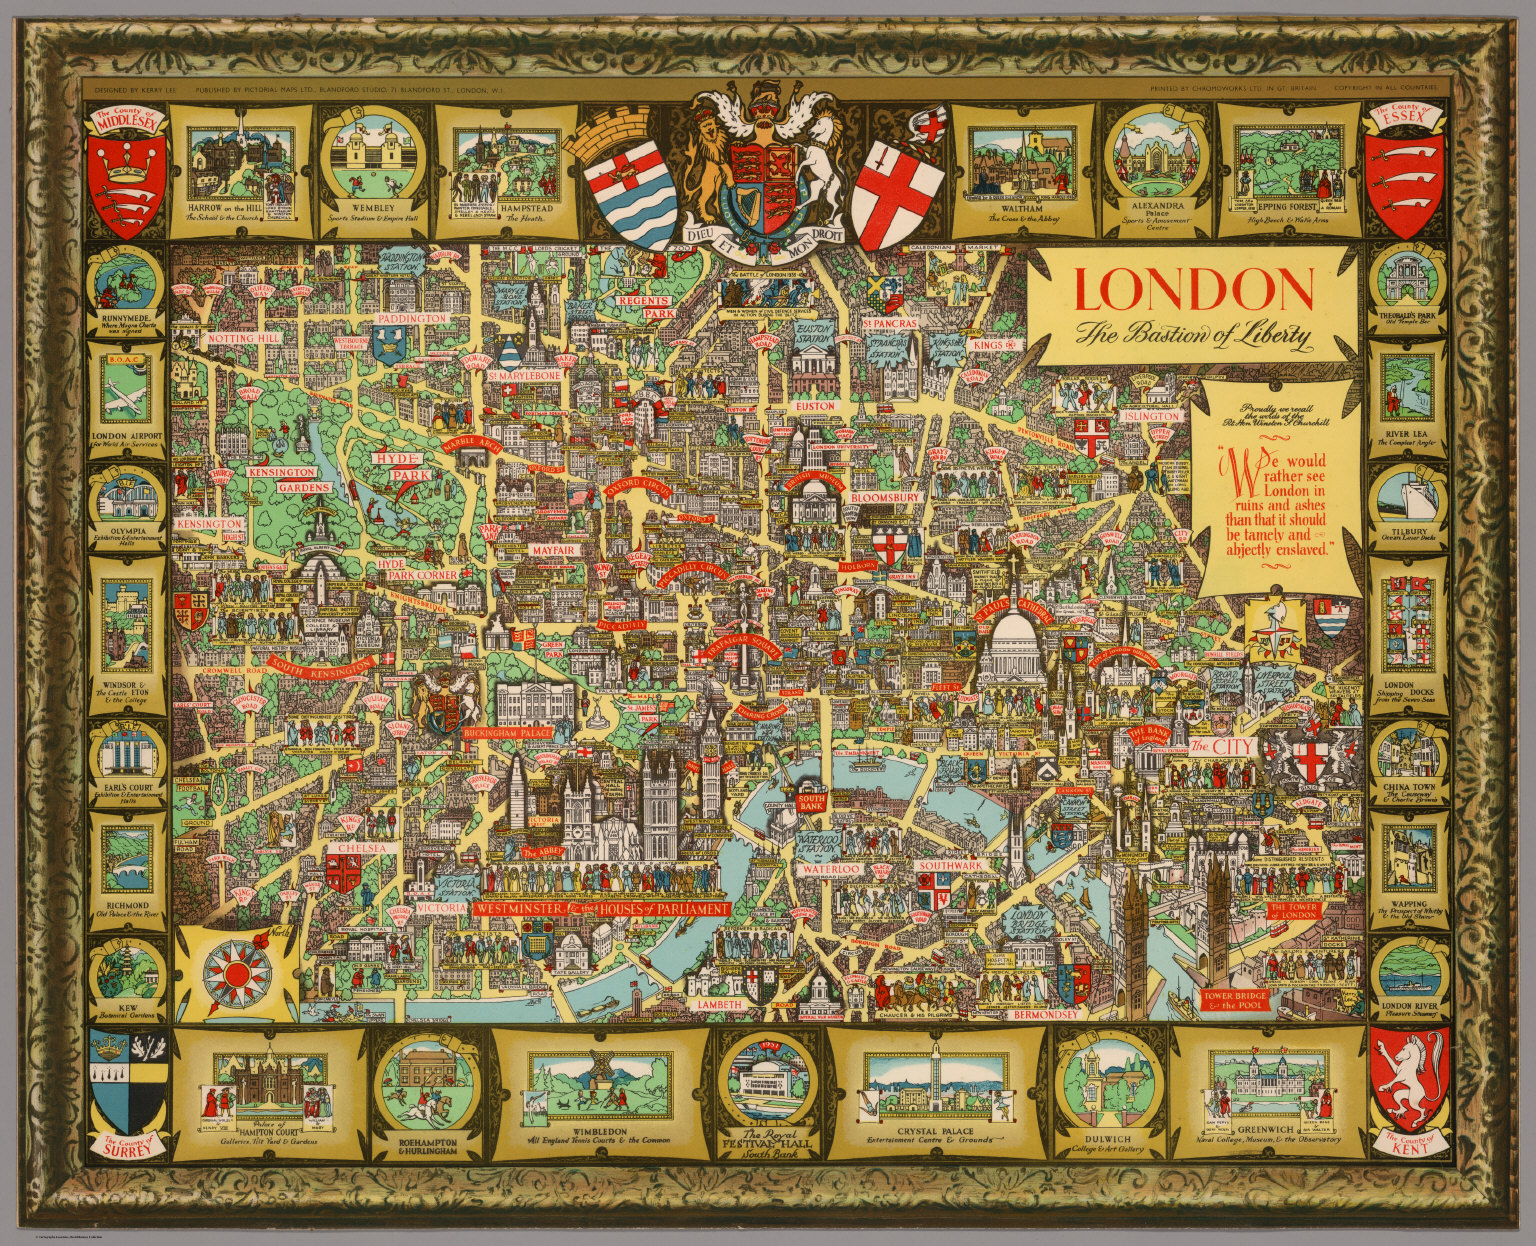 London The Bastion Of Liberty David Rumsey Historical Map - London map historical